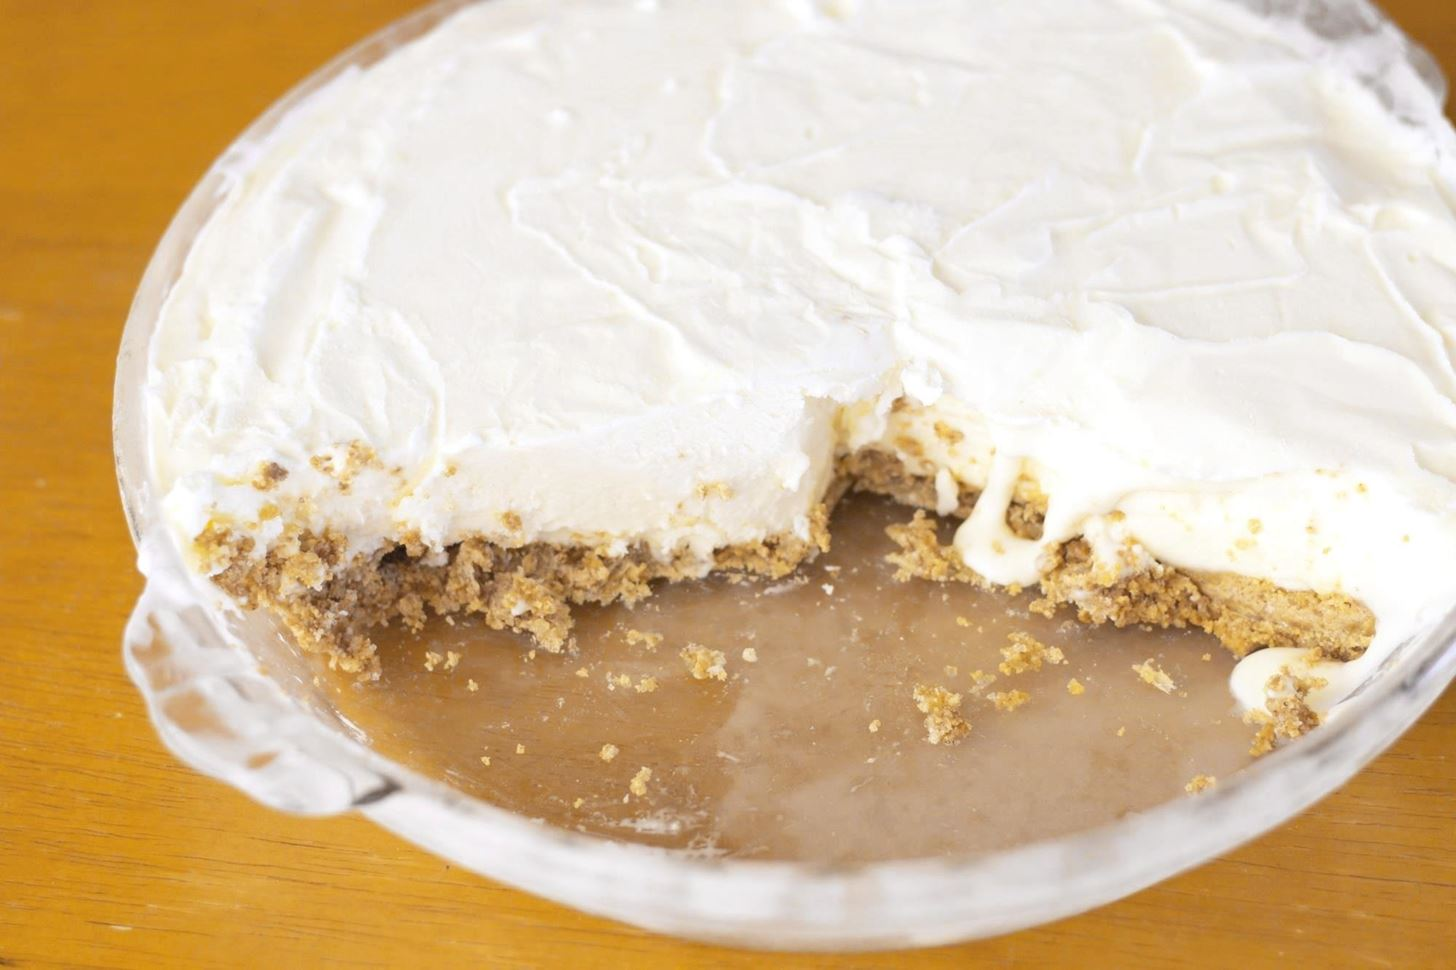 Grab a Can of Lemonade Concentrate for the Easiest Frozen Pie Ever